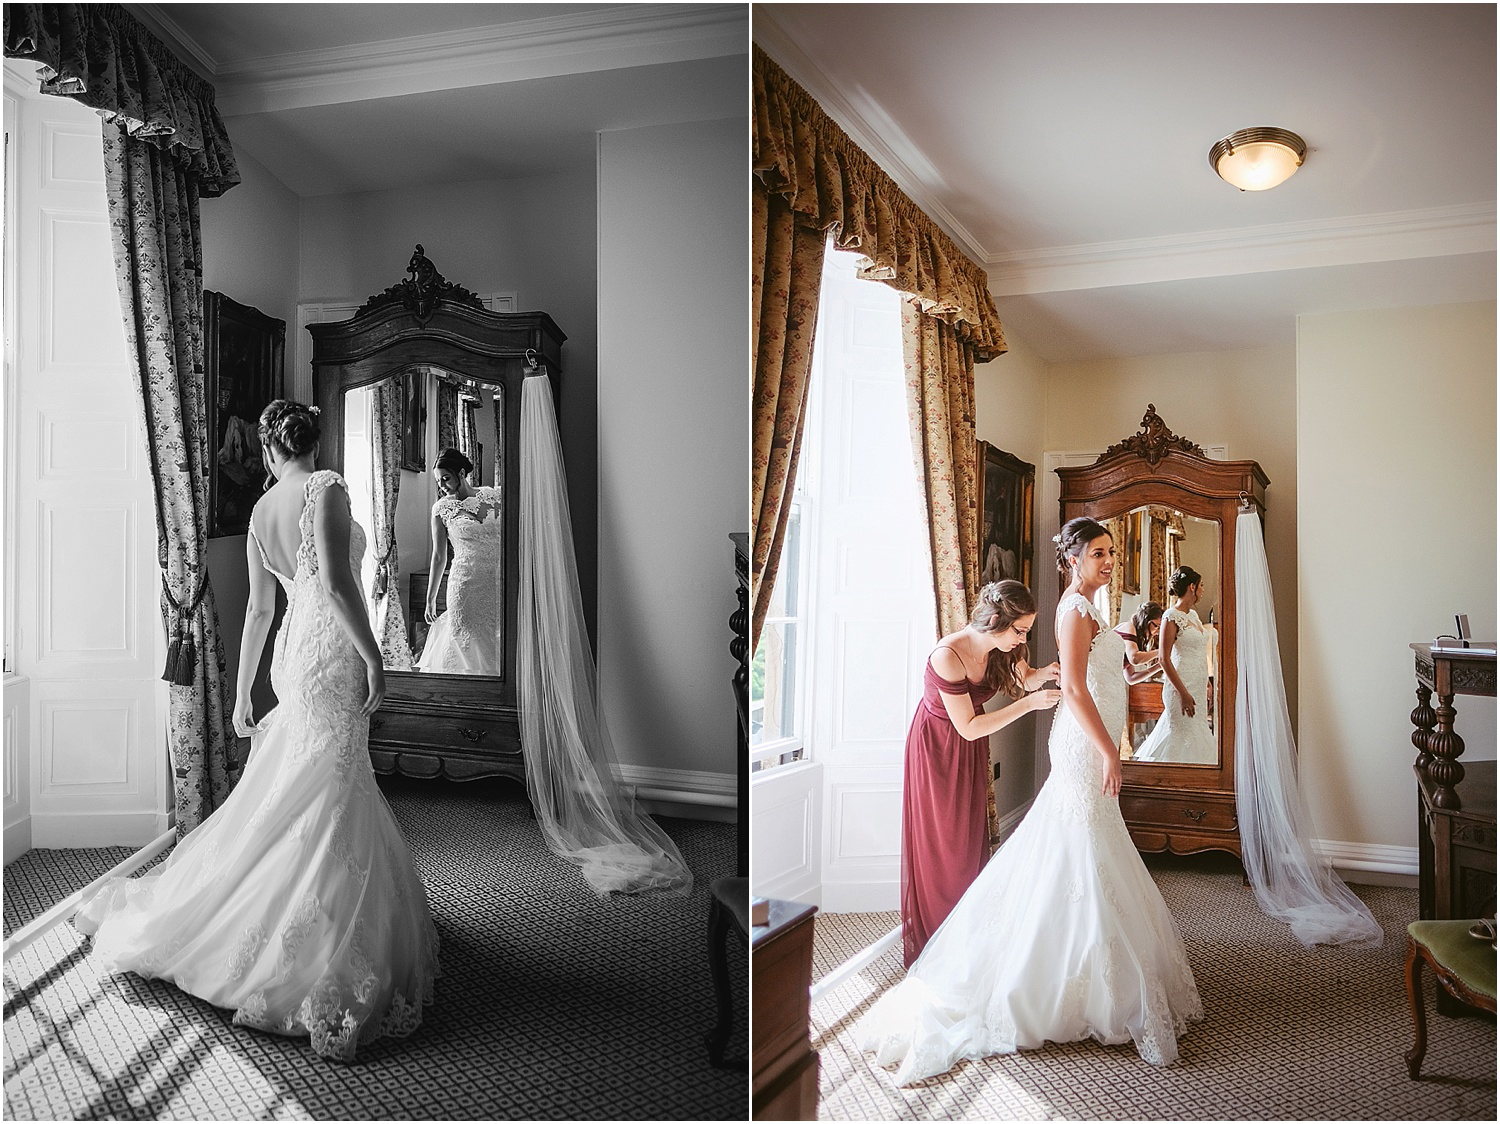 Wedding at Beamish Hall - wedding photography by www.2tonephotography.co.uk 119.jpg